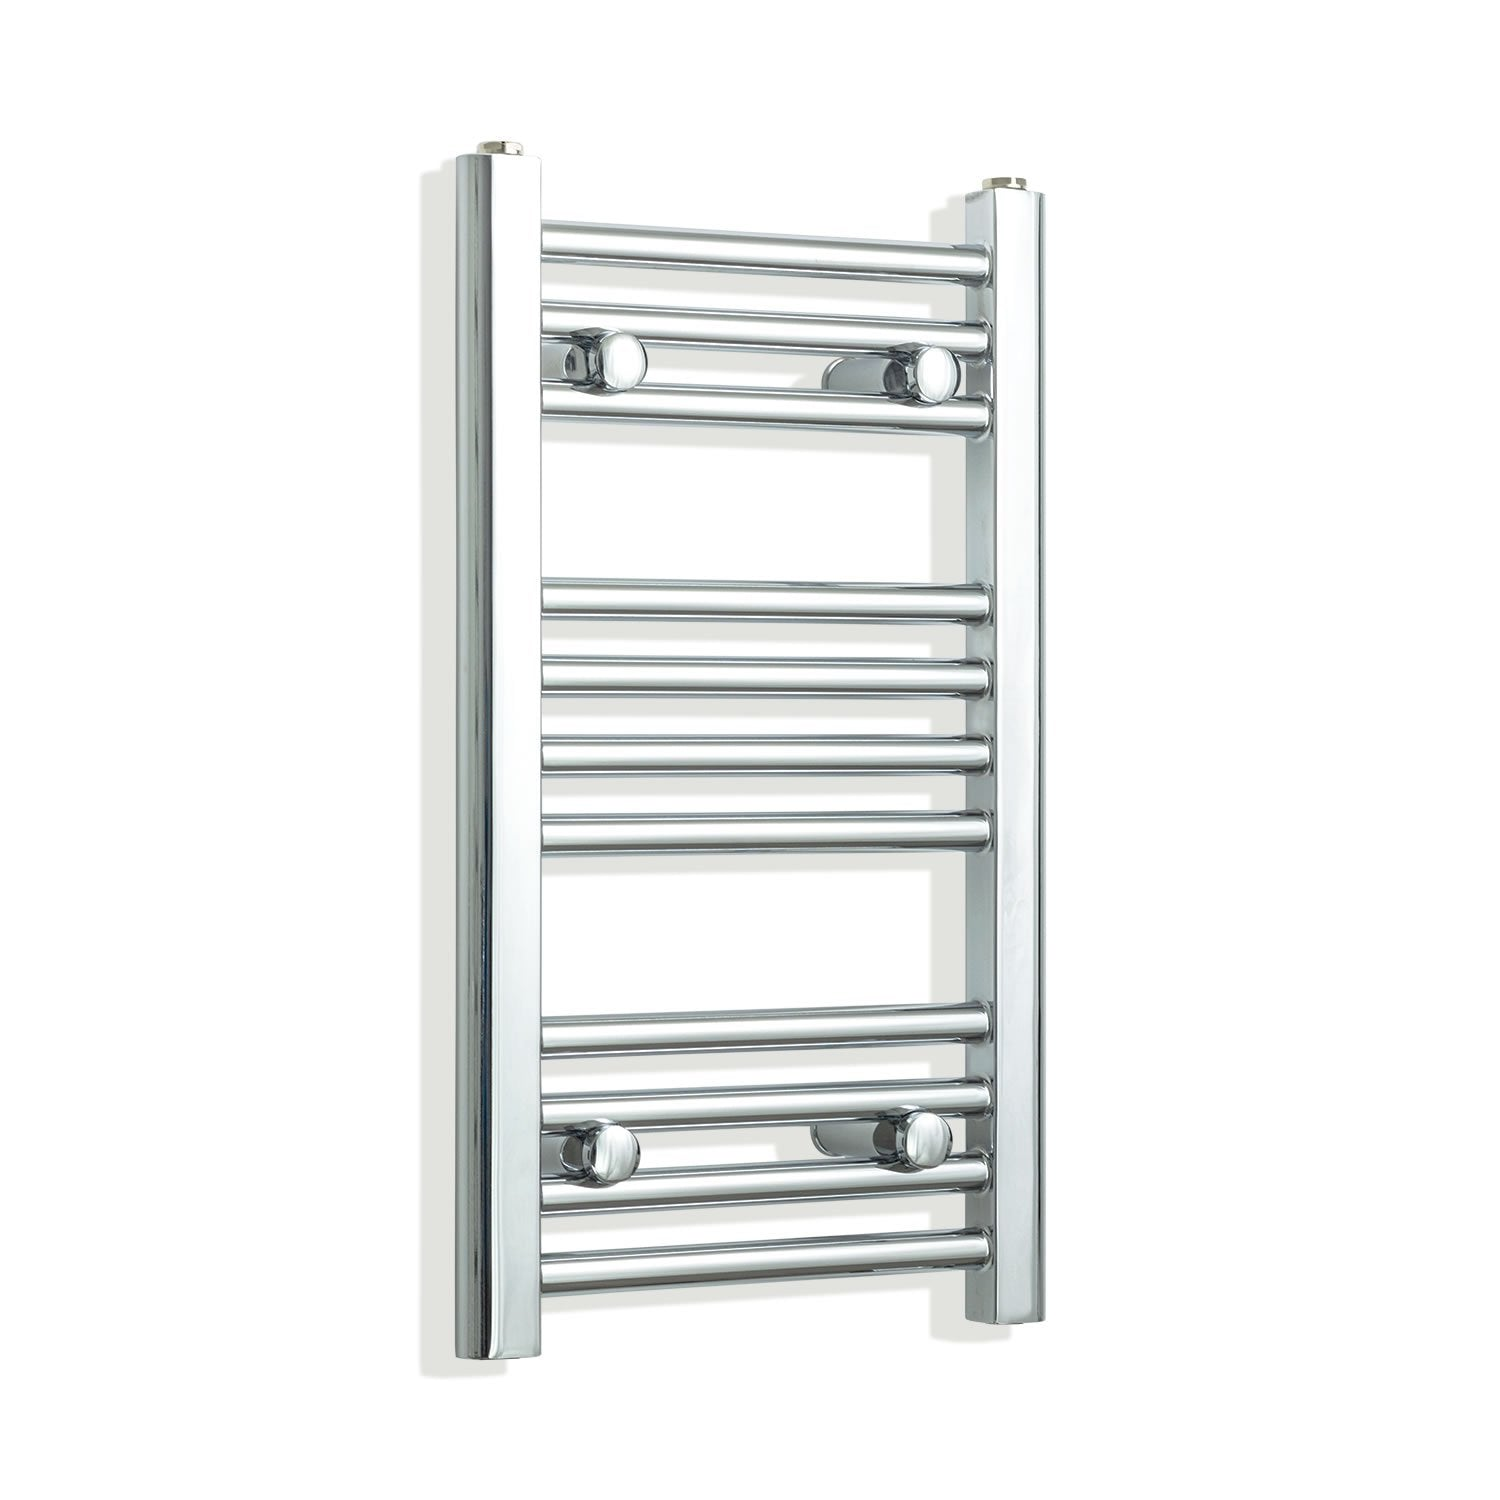 300mm Wide 600mm High Flat Chrome Heated Towel Rail Radiator,Towel Rail Only